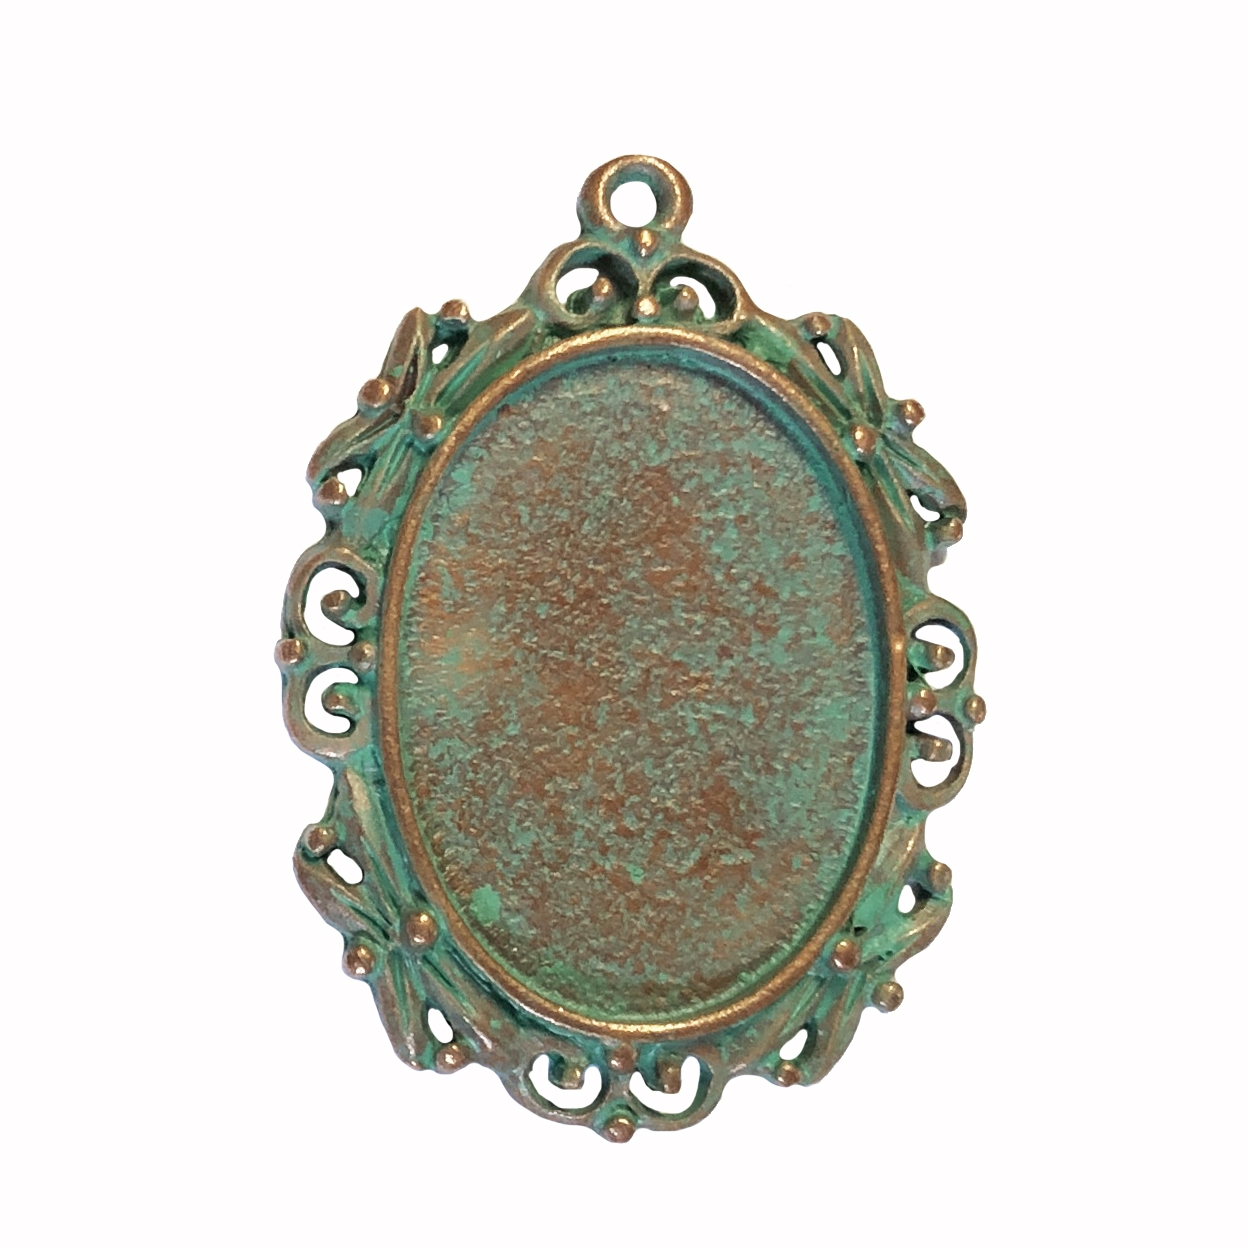 vintage pewter castings, B'sue by 1928, Victorian pendants, cameo mounts, stone mounts, weathered copper, nickel free finish, lead free pewter, vintage castings, mint green patina, made in the USA, vintage jewelry supplies,1928 Jewelry, B'sue, 0362